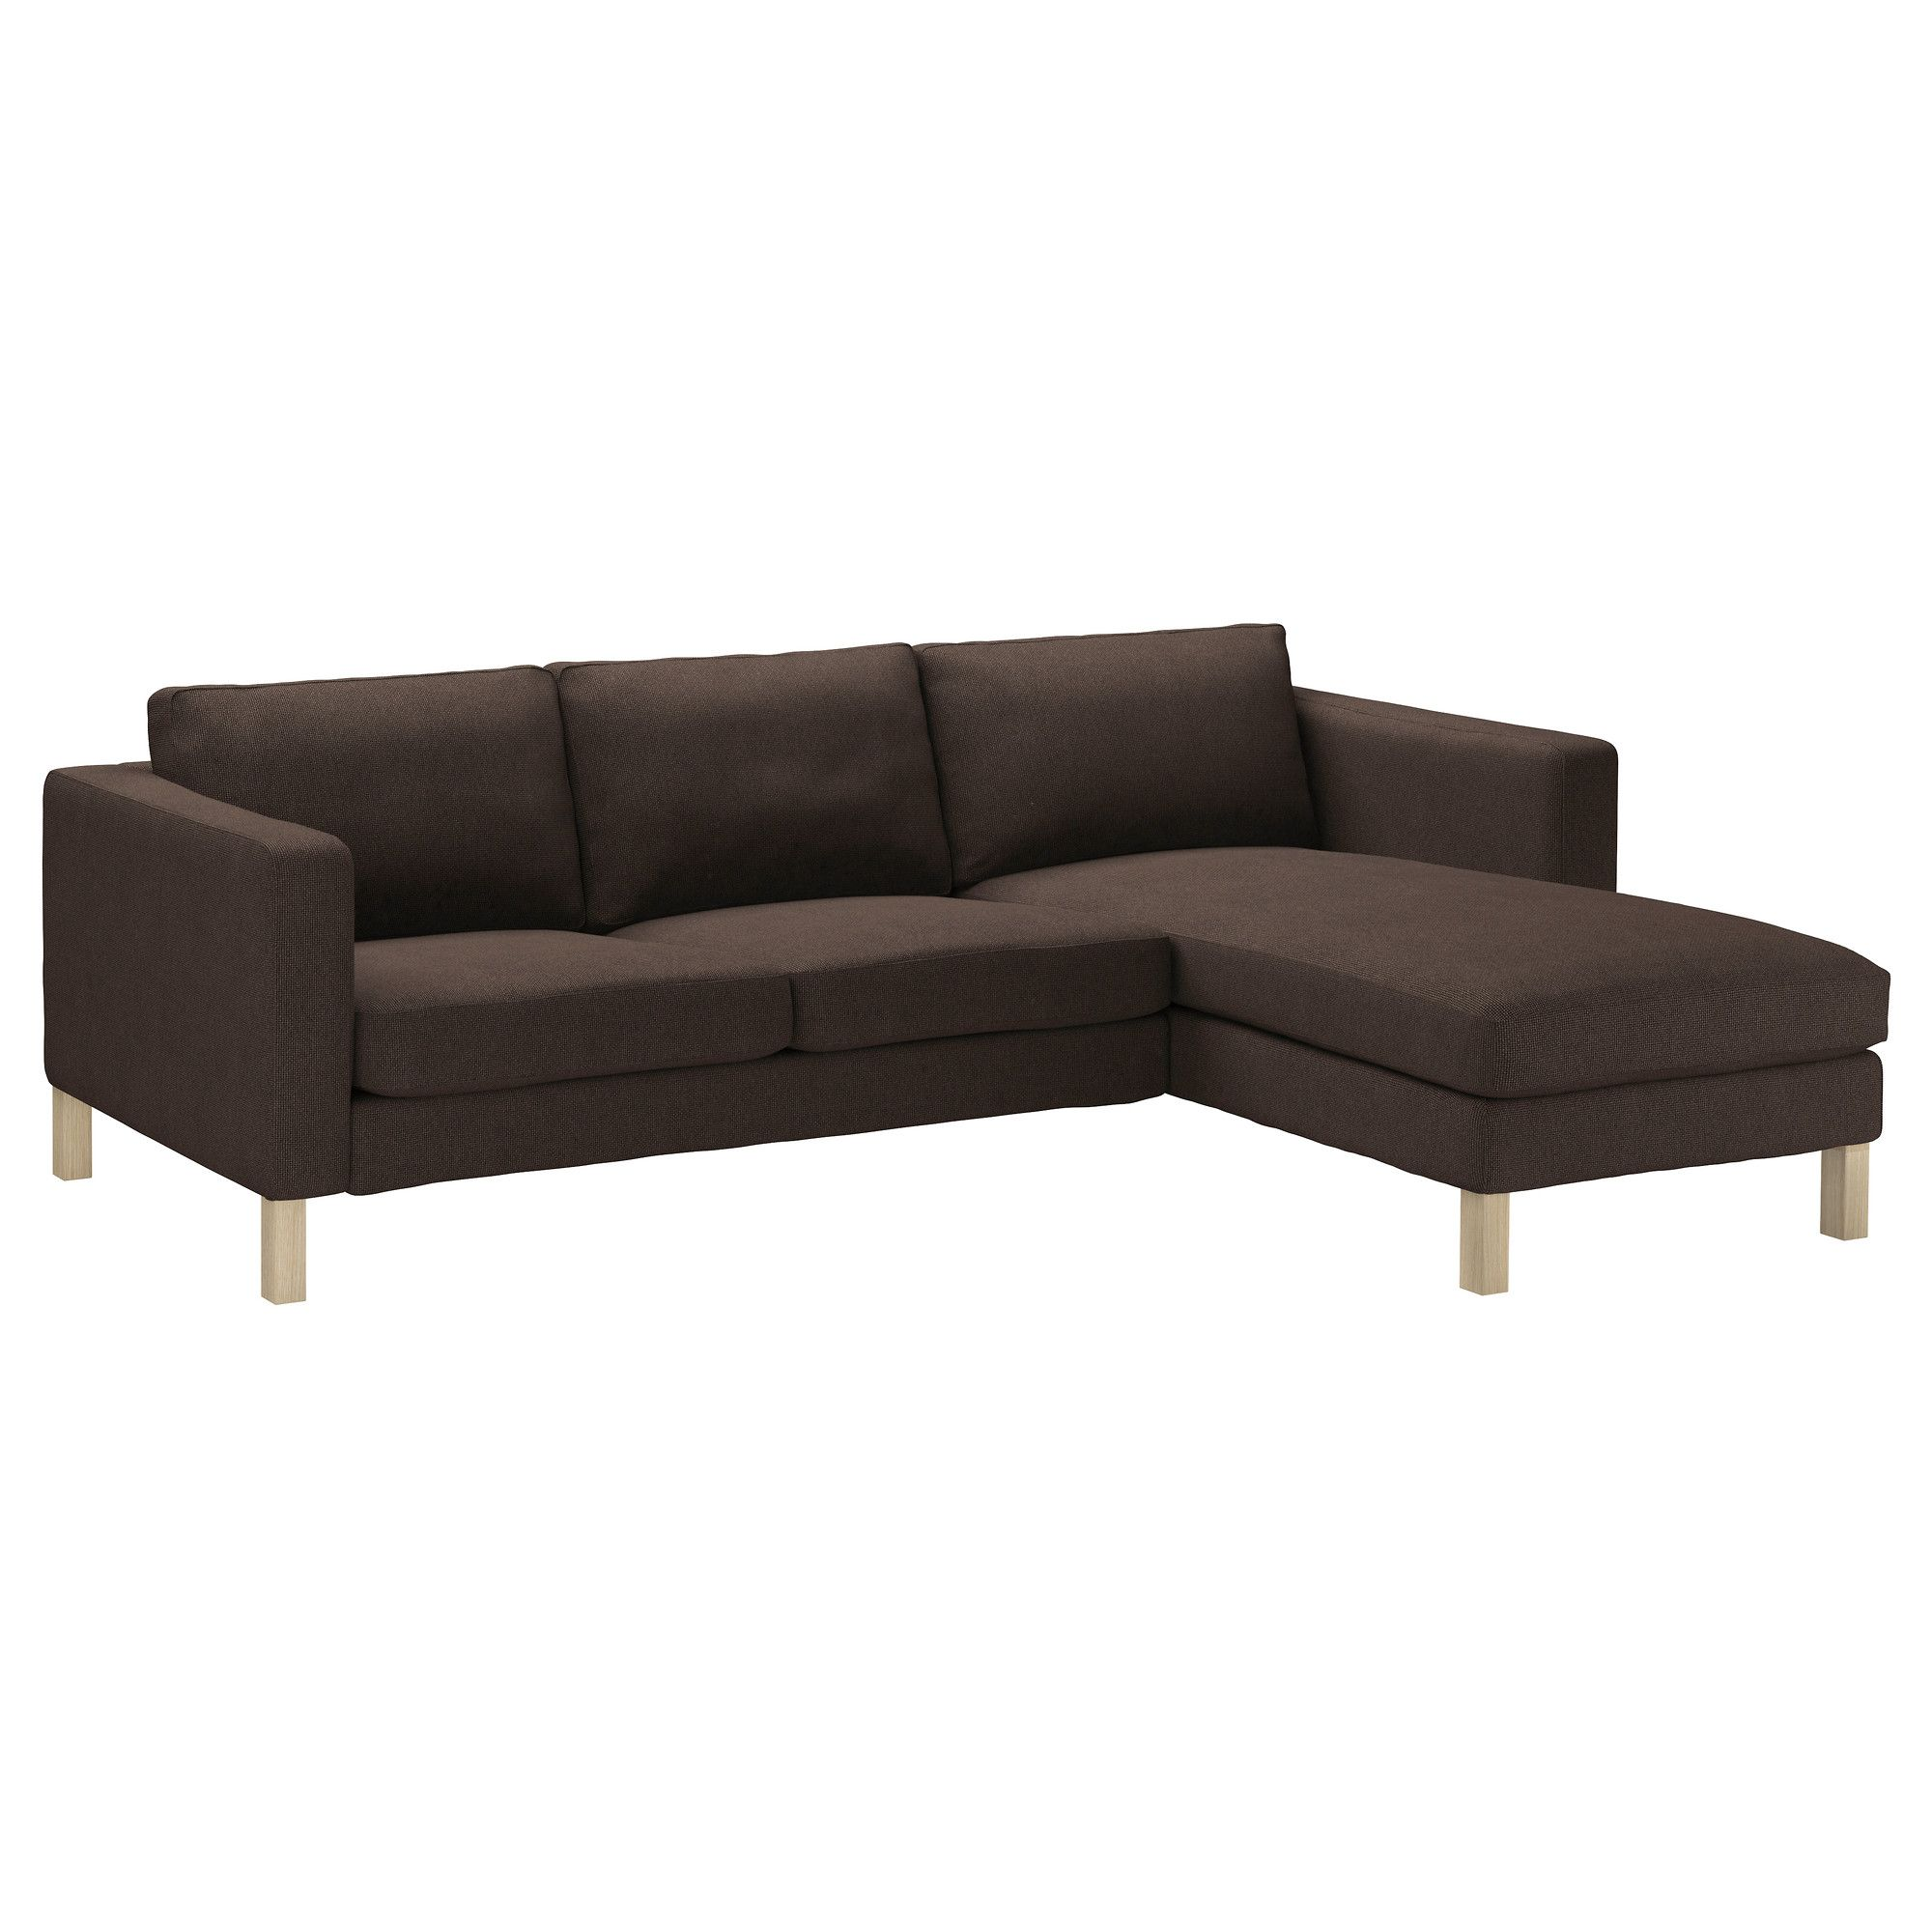 Cheap Modular Lounges Karlstad Loveseat And Chaise Lounge Korndal Brown Ikea House